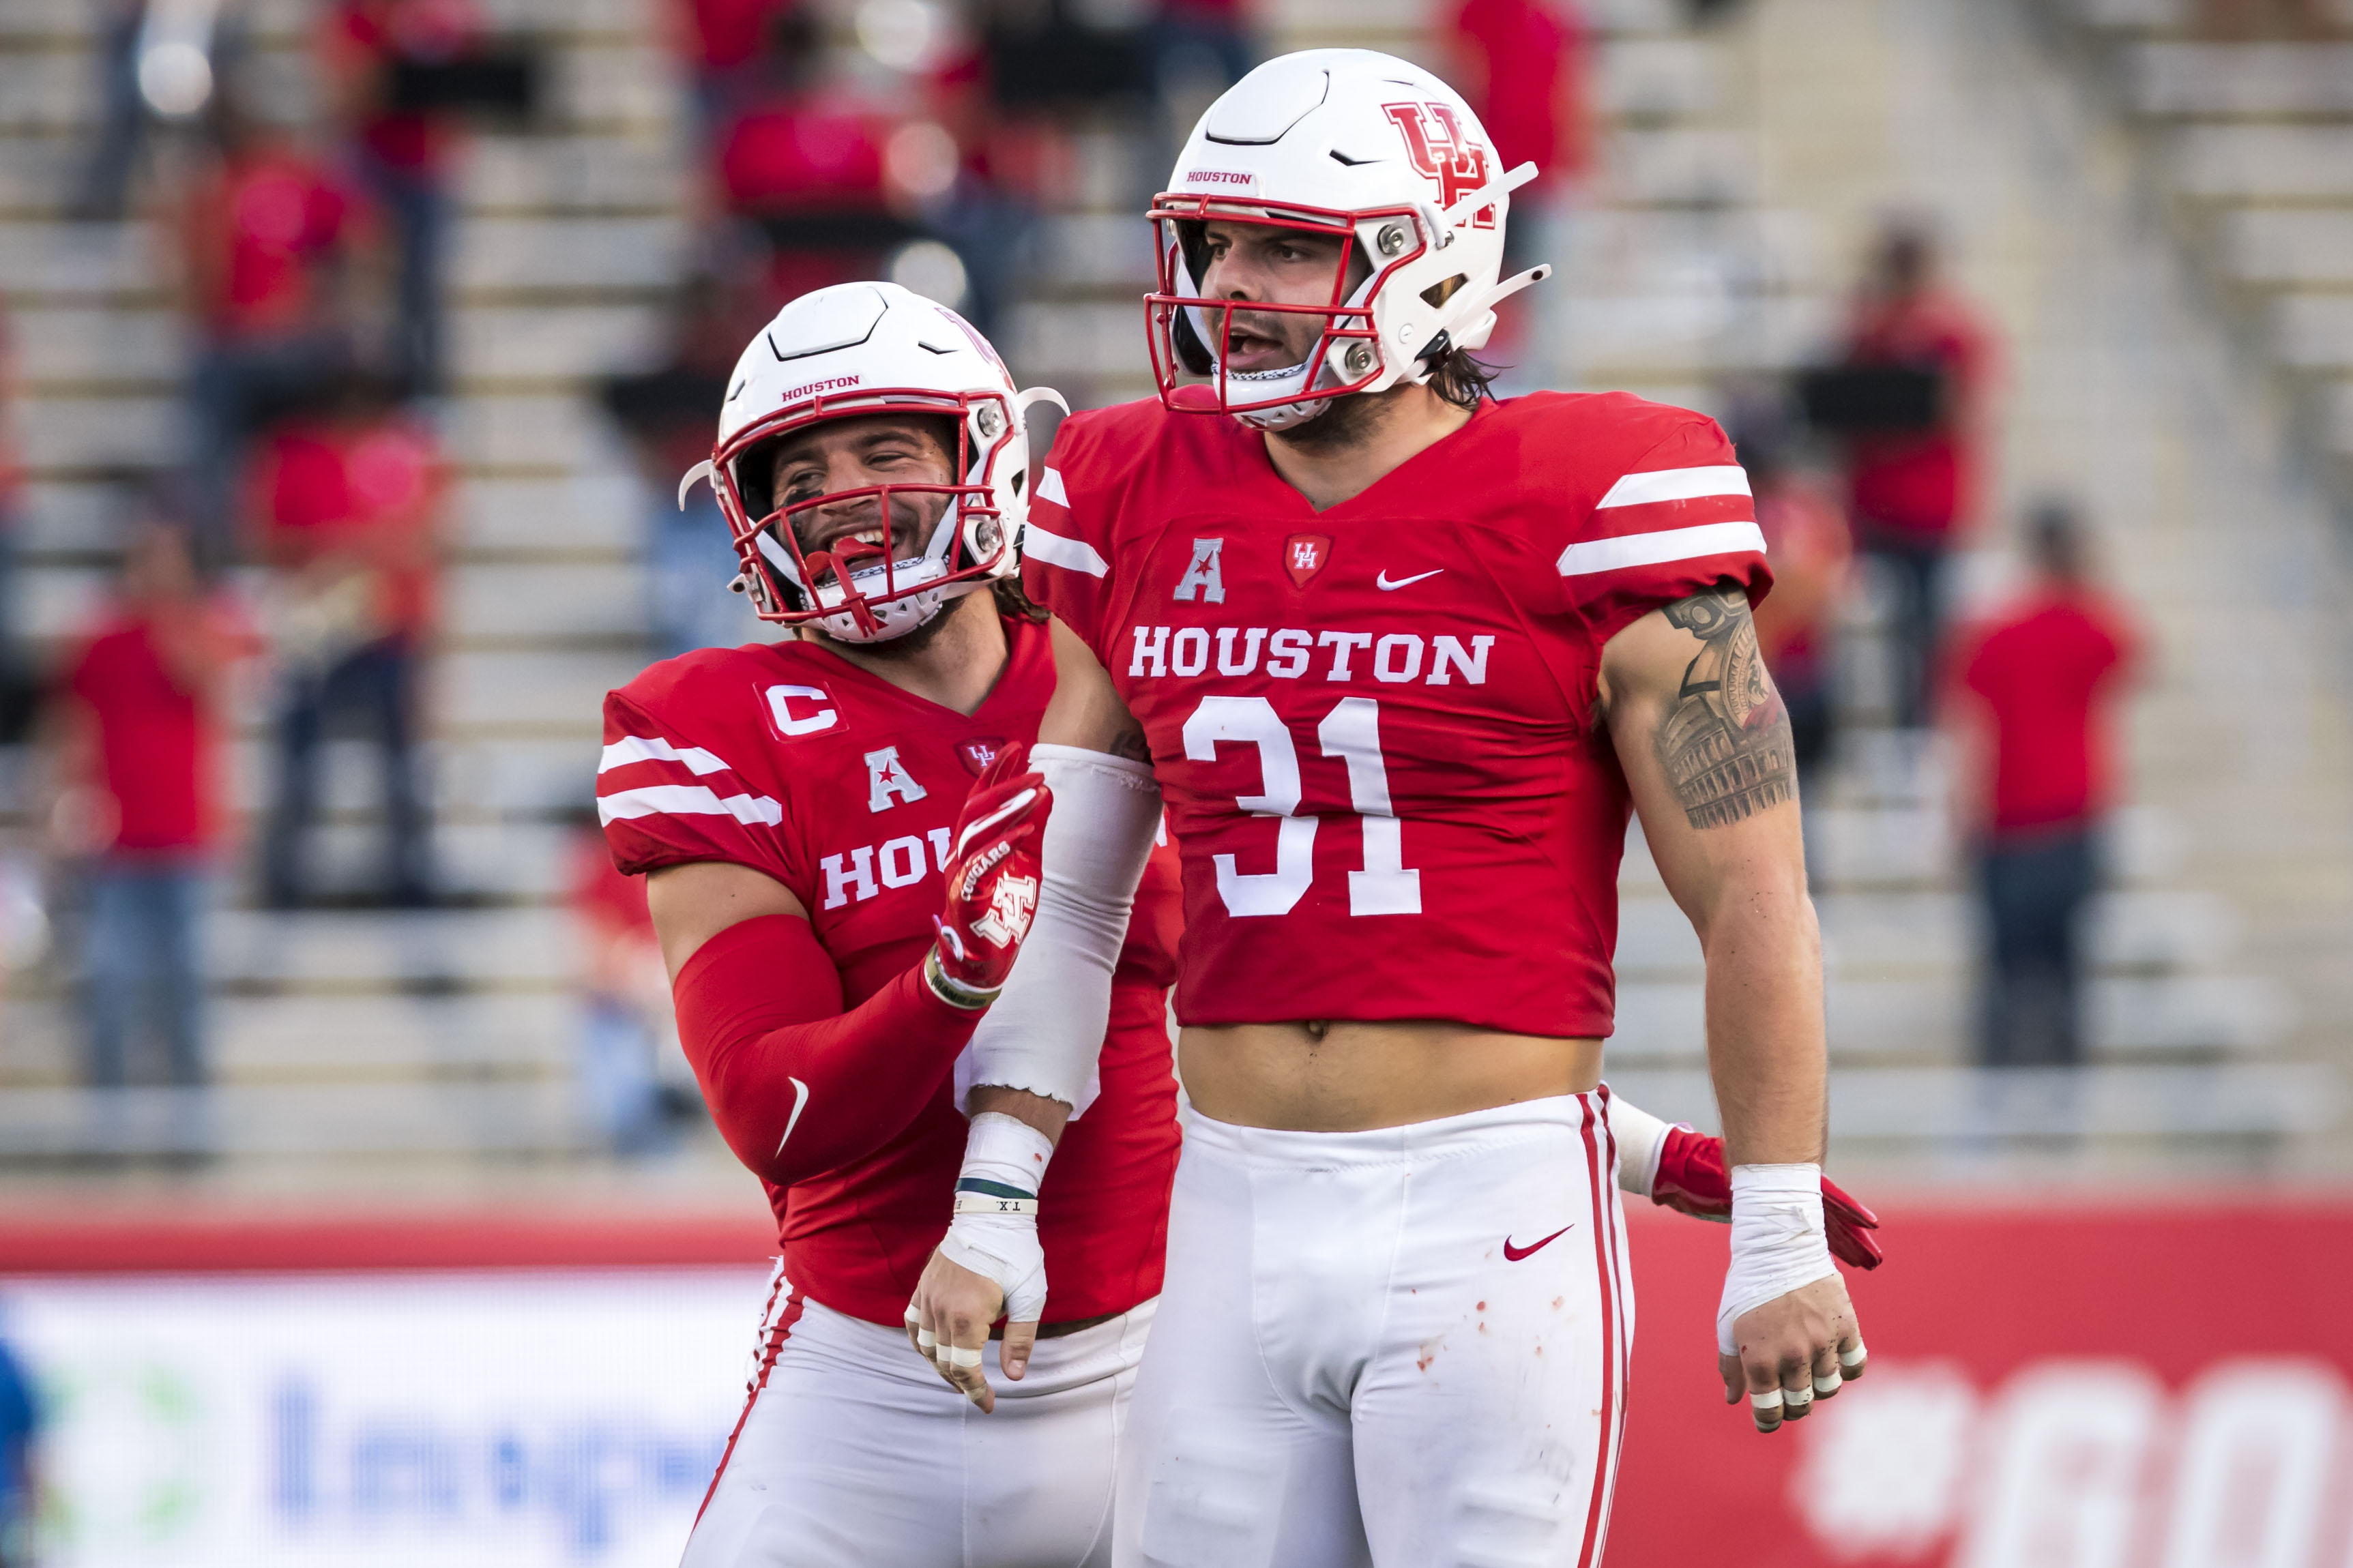 Junior defensive lineman Derek Parish had a huge game against USF, recording five tackles, including 1.5 sacks, and scooping up a fumble and returning it 85 yards for a touchdown |Joe Buvid/UH Athletics.